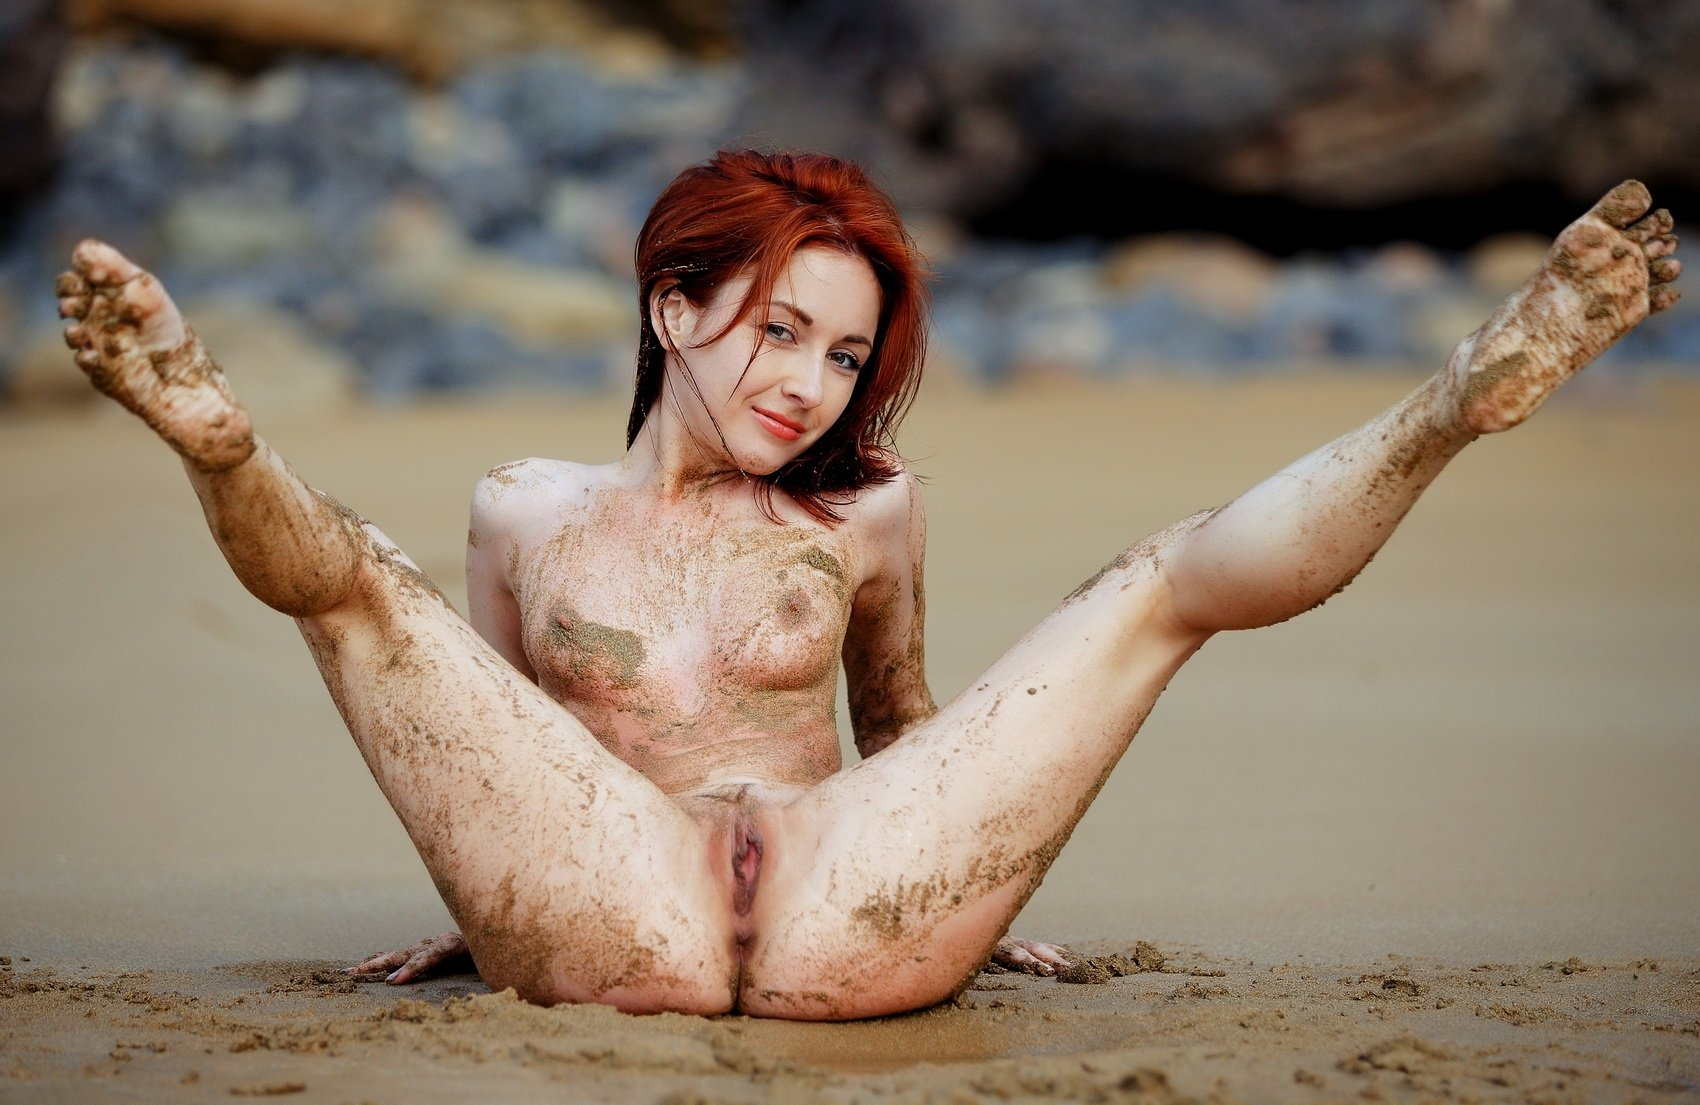 Girl Stripping And Talking Dirty Married Sex Survey And Also Nude Photo Galleries